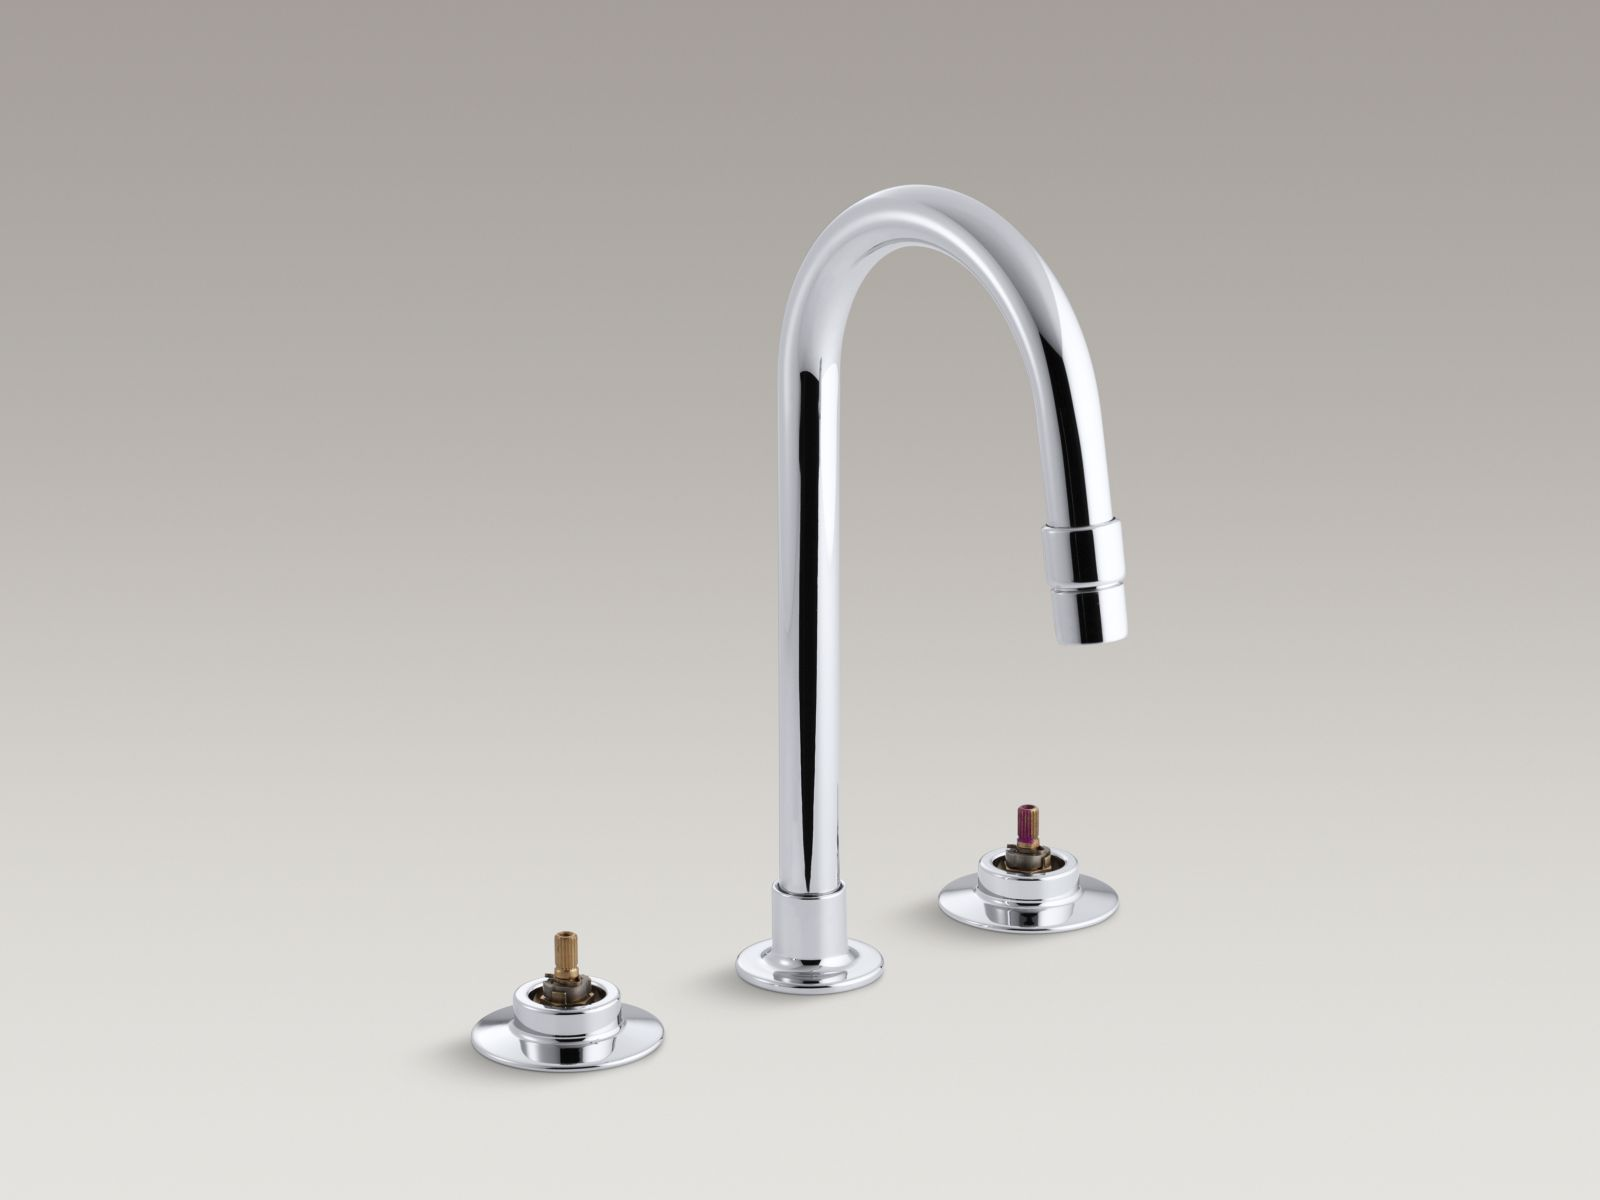 Kohler K-7303-K-CP Triton Widespread Handle-less Commercial Bathroom Faucet with Rigid Connections and Gooseneck Spout Polished Chrome